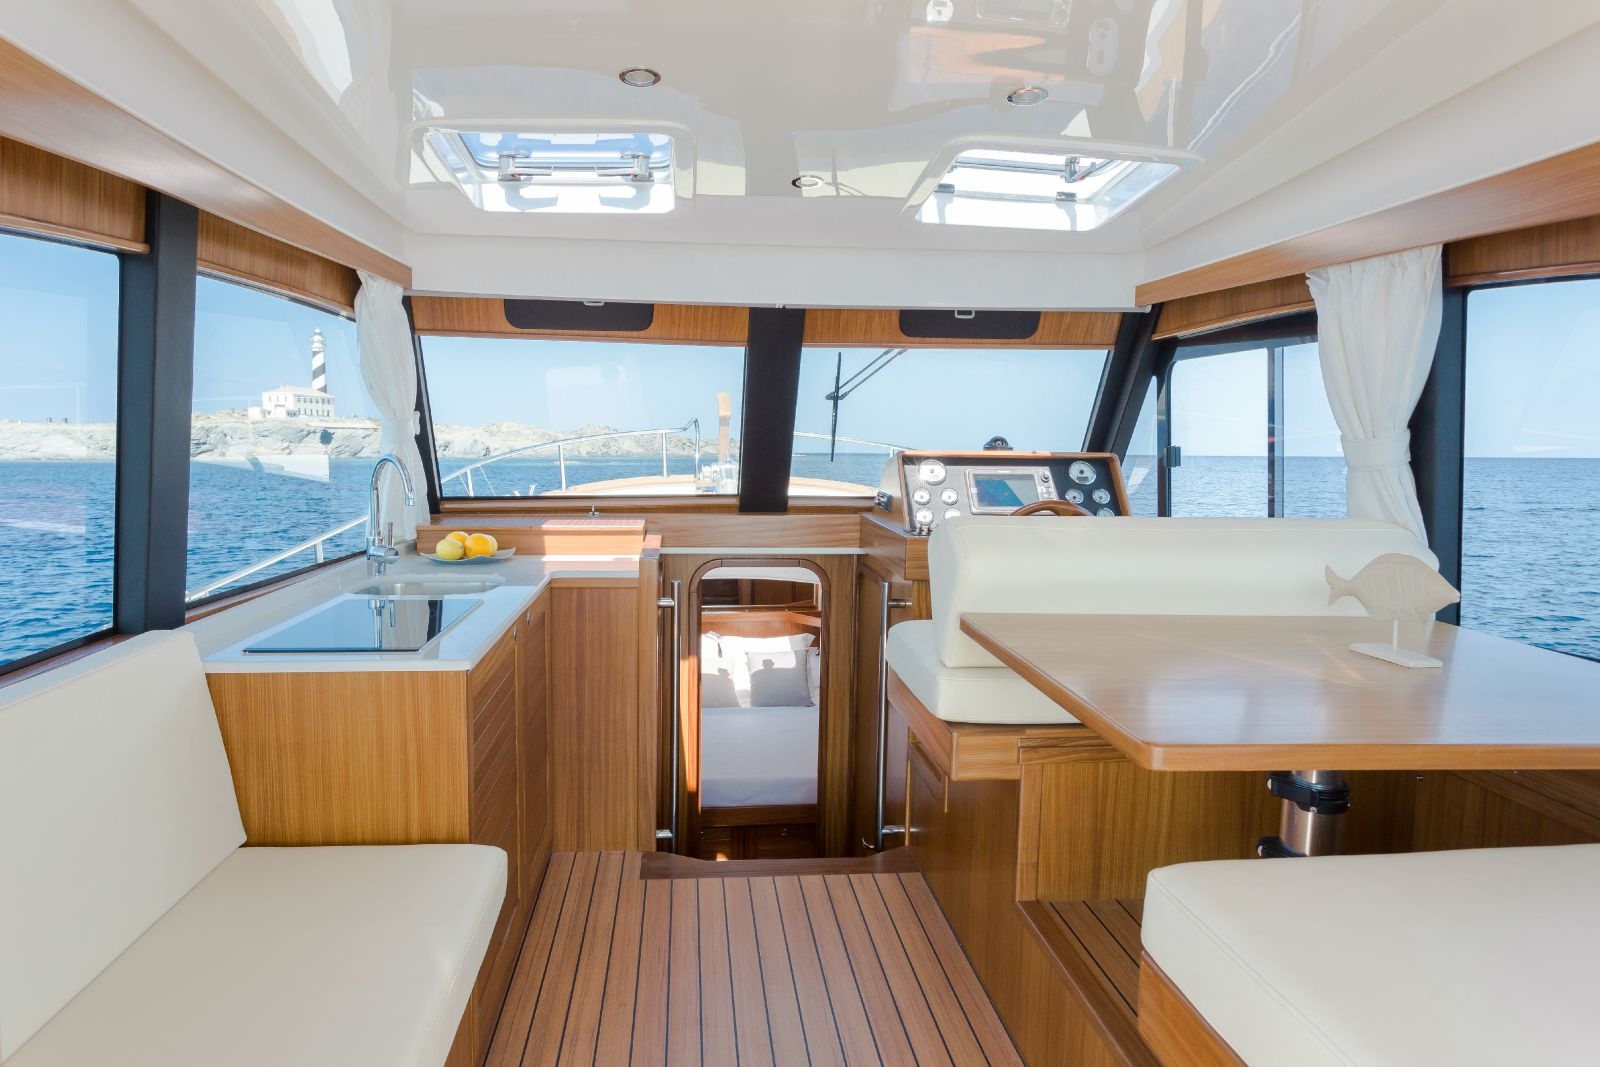 Minorca Islander 34 yacht for sale